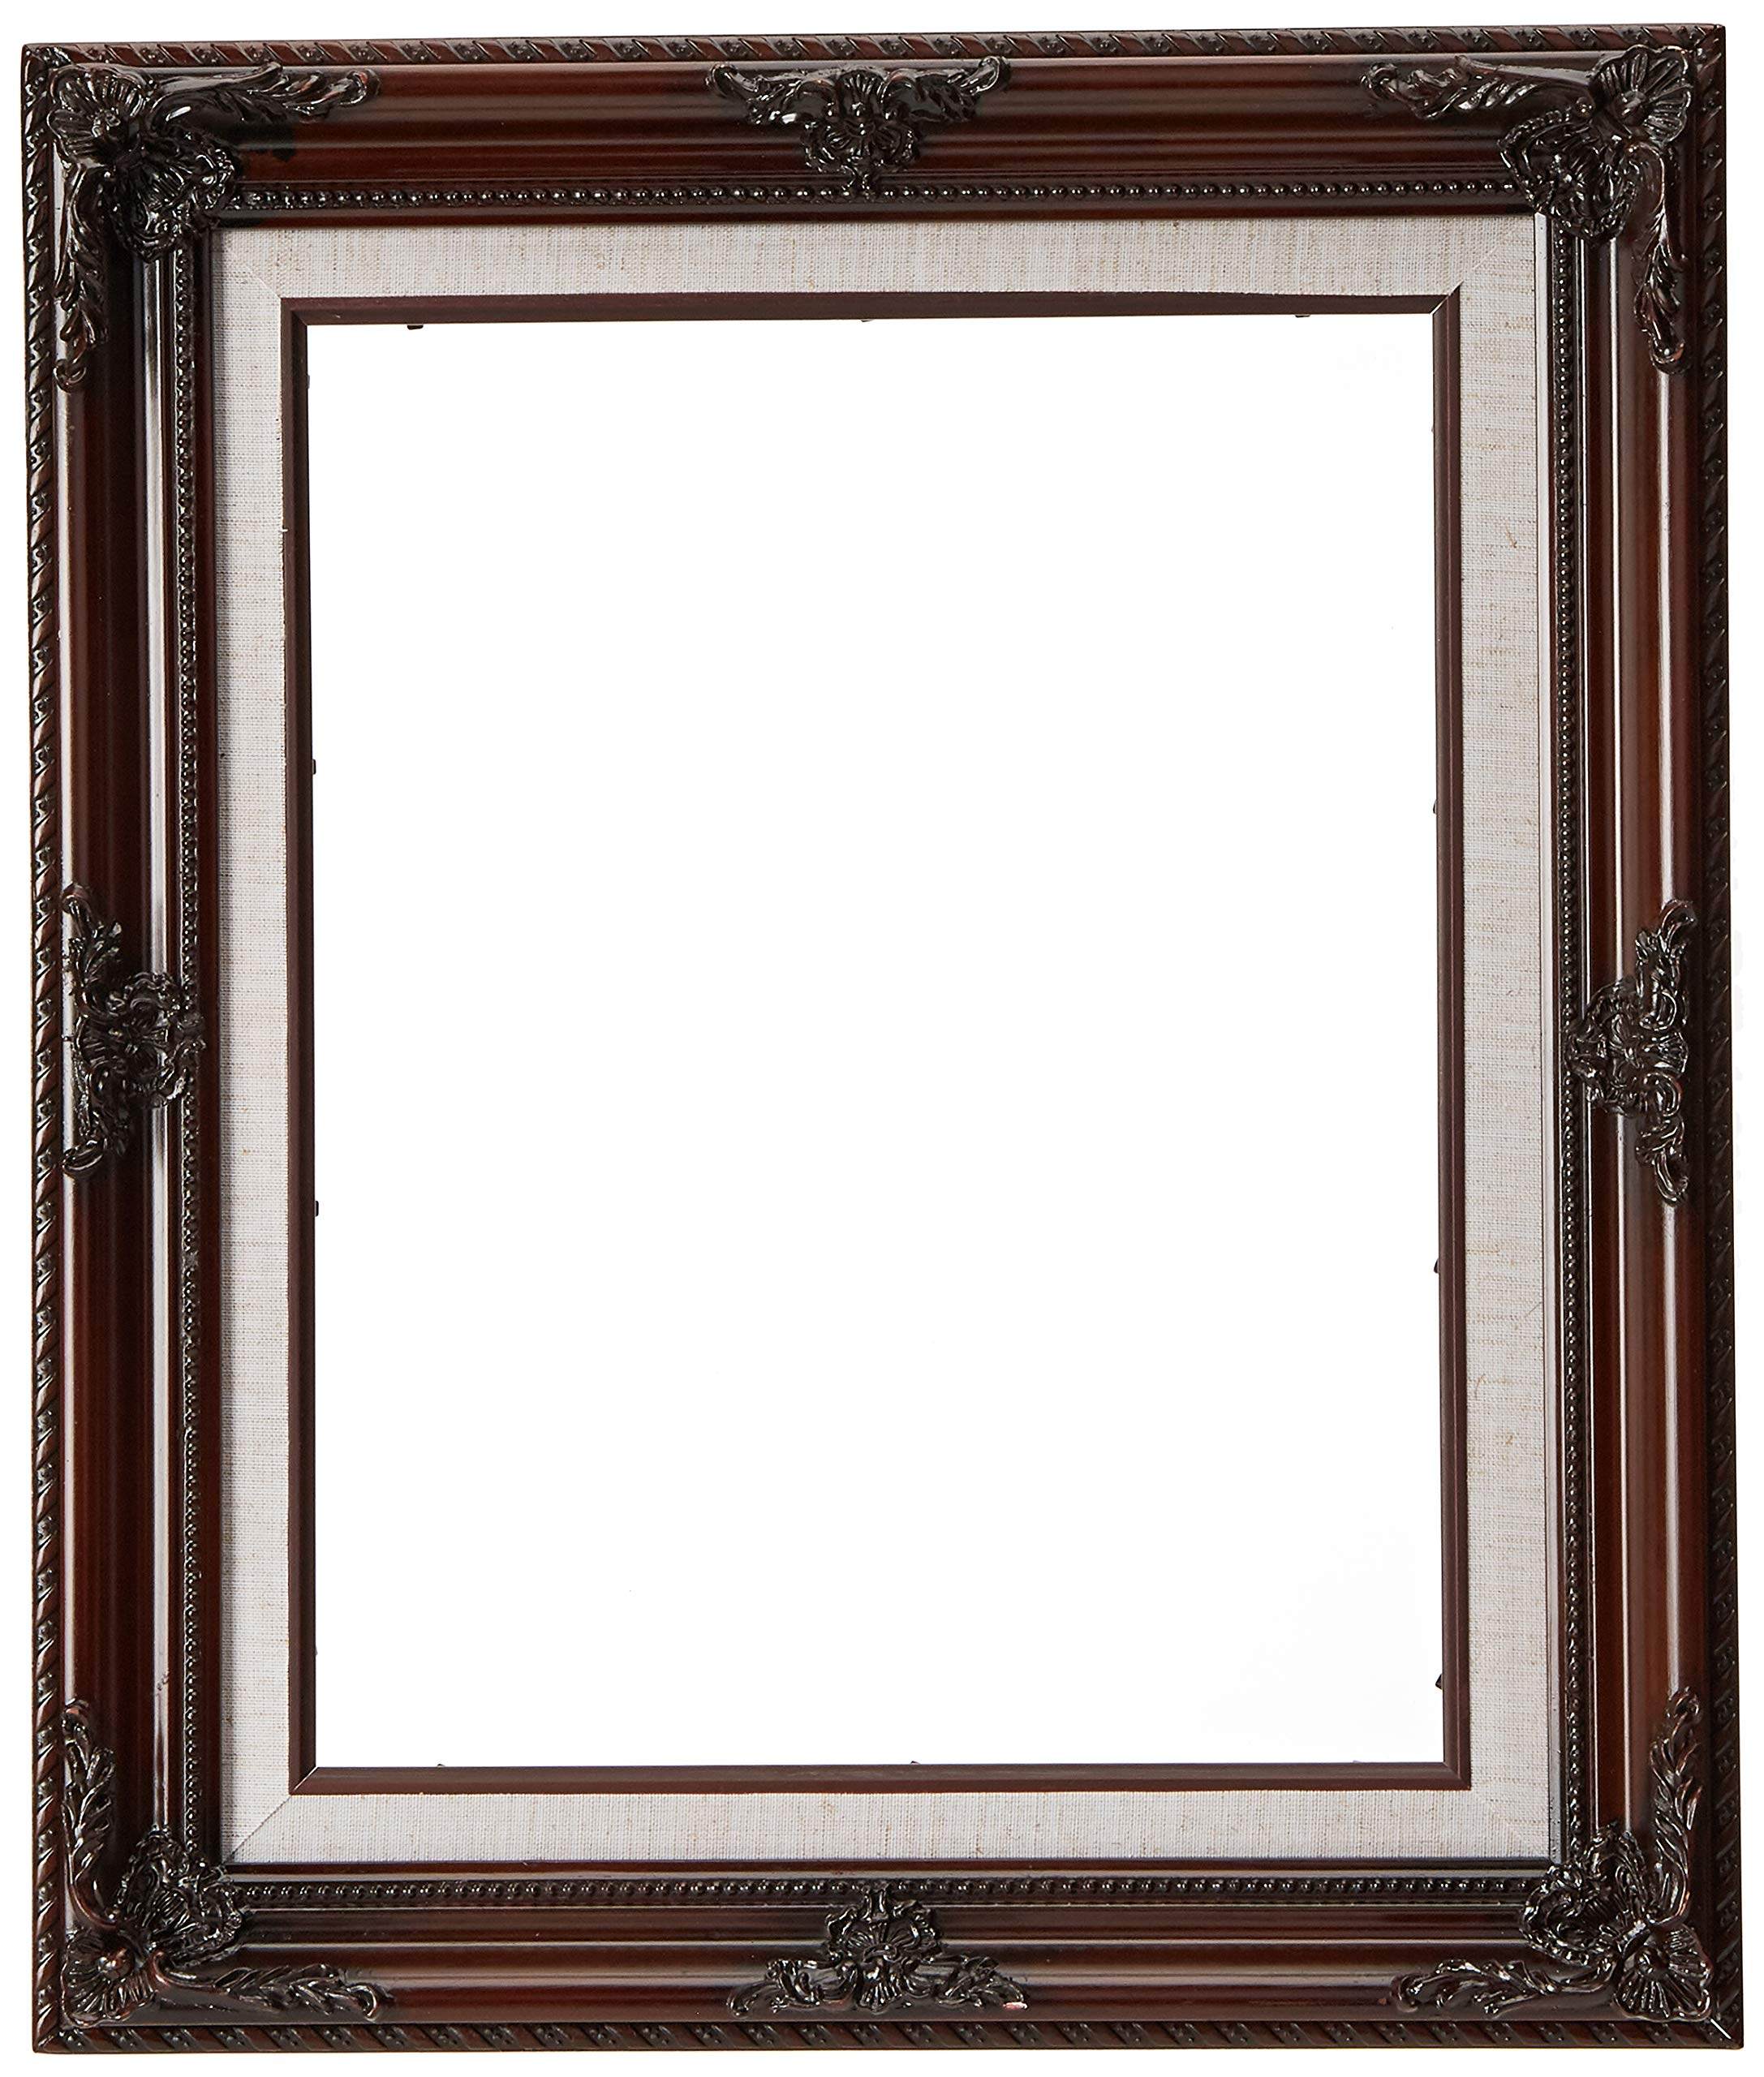 MyFrameStore Molded 11x14 Imperial Wooden Picture Frames - Dark Mahogany | Exclusive Floral Design for Wedding, Hallway, Bedroom, Living Room & Office Décor. Wall Photo Frame & Wall Mounting Material,